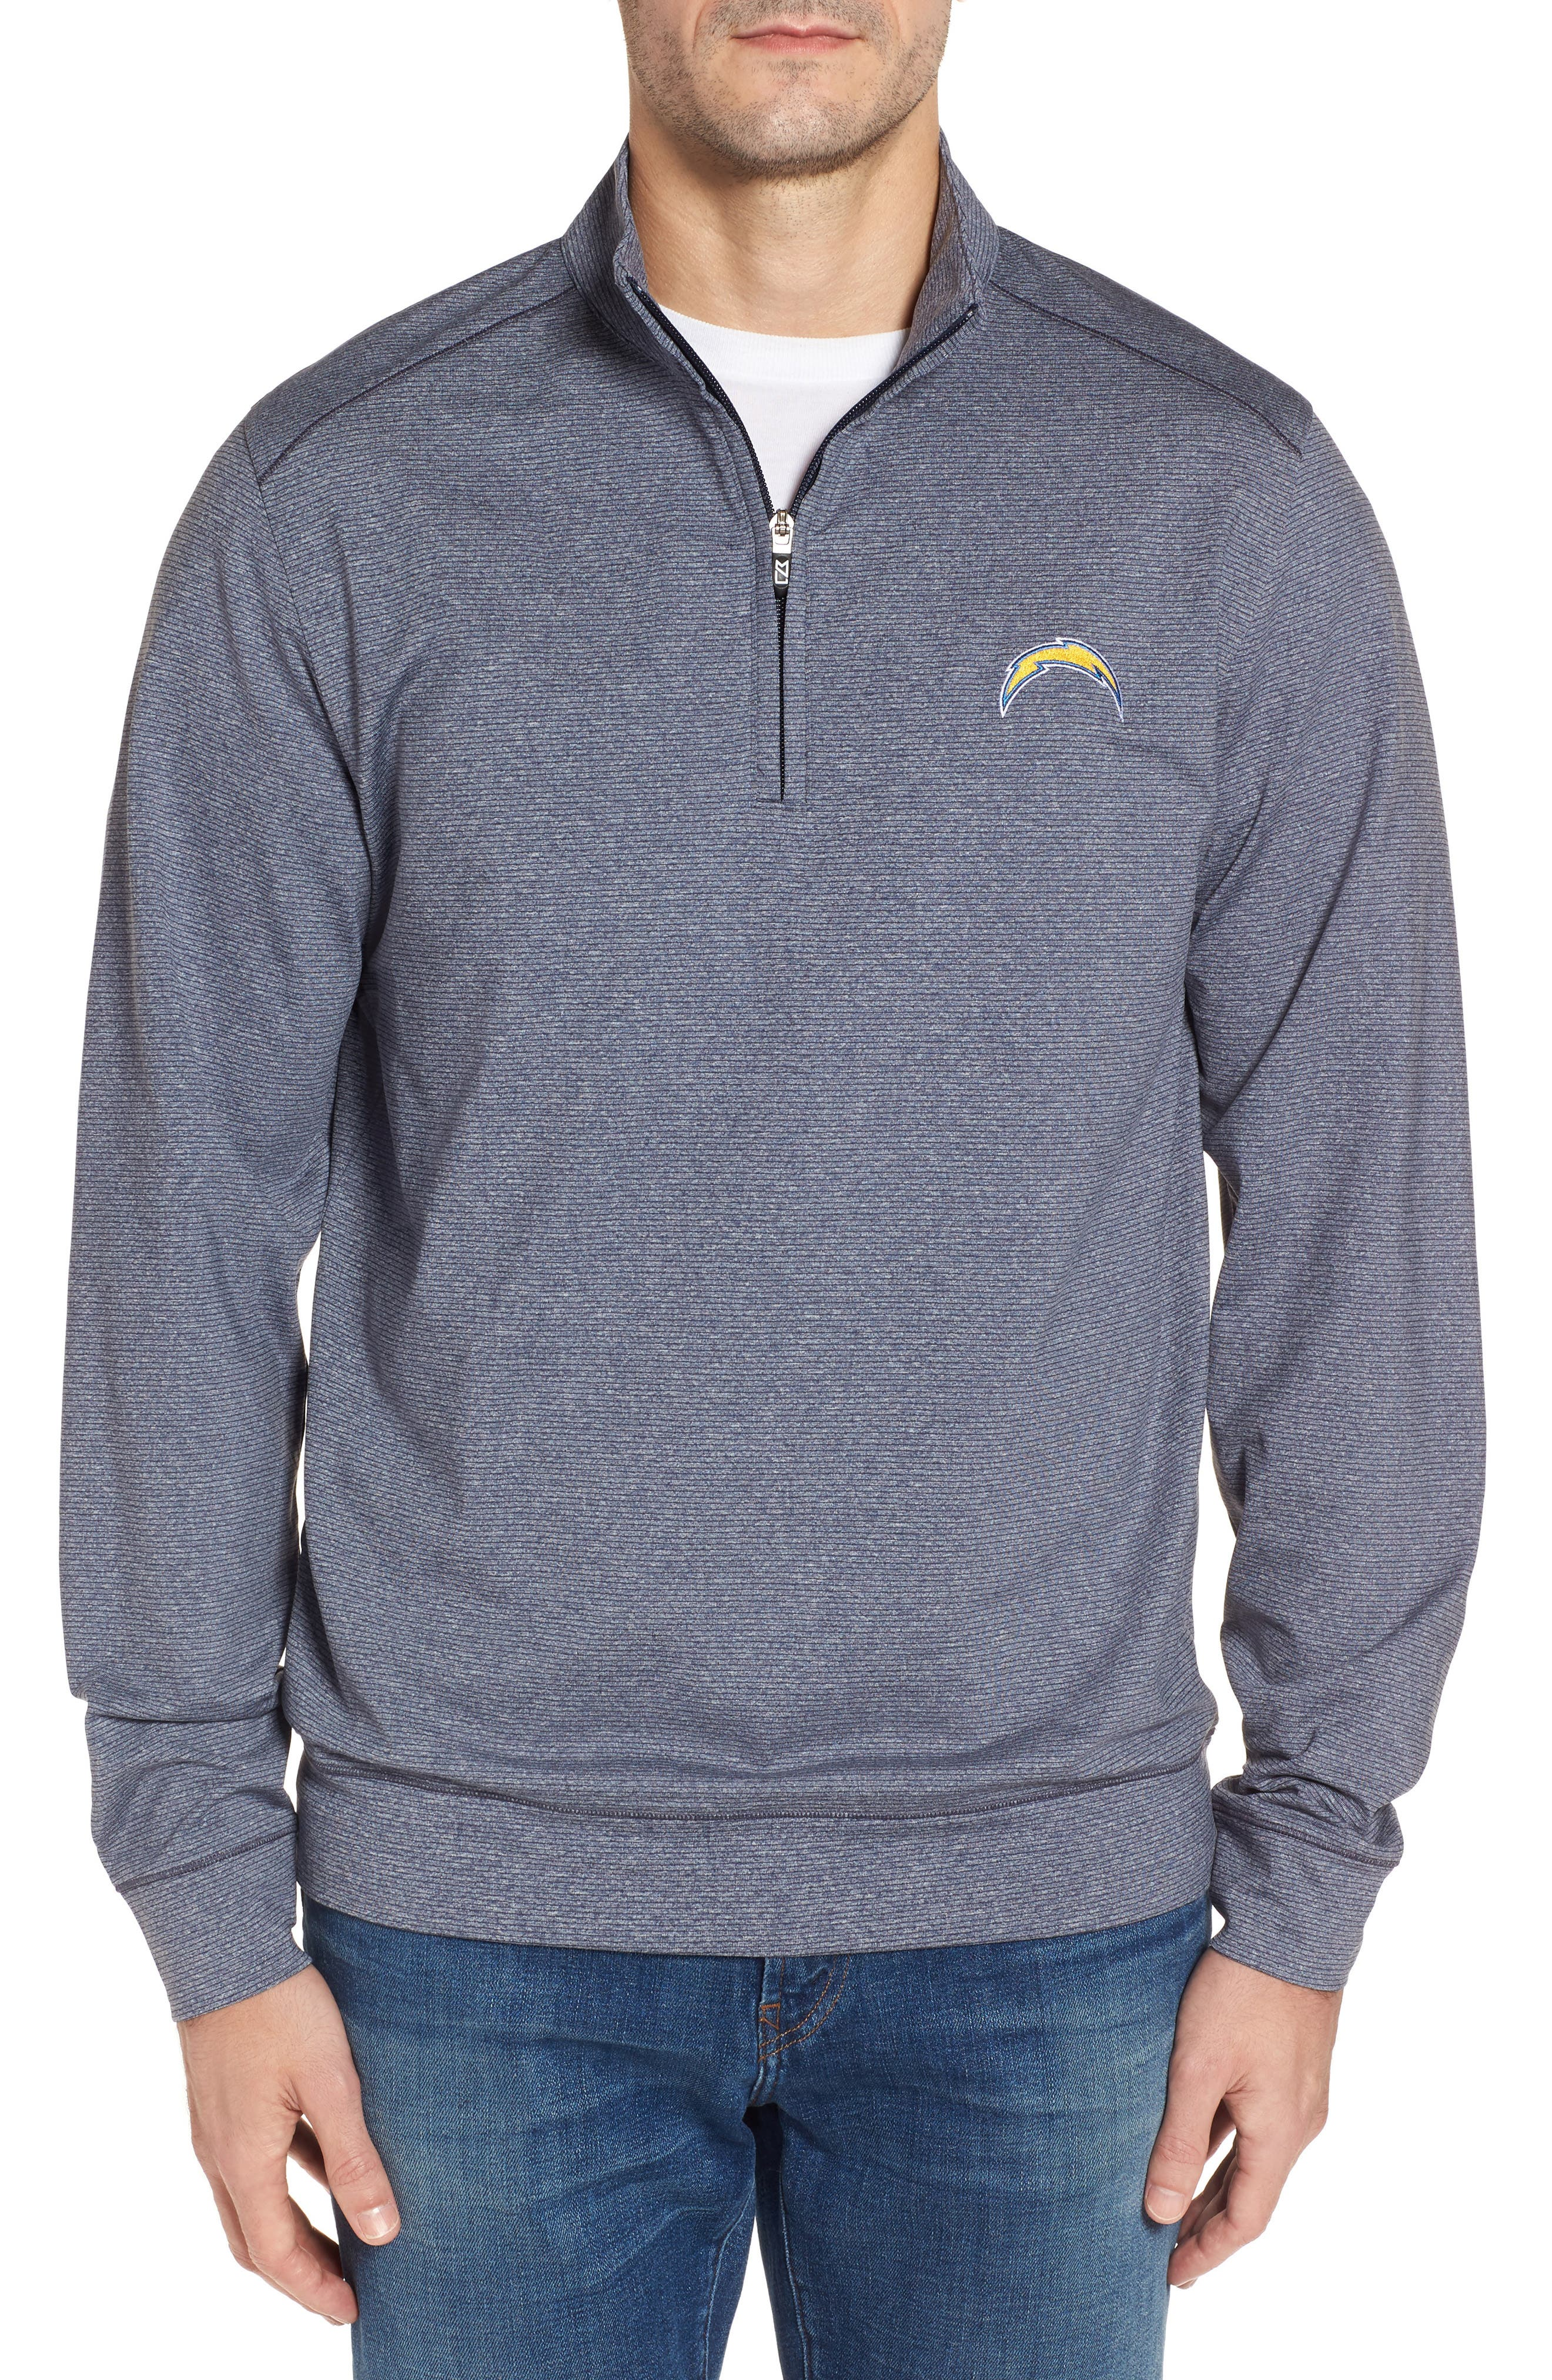 Shoreline - Los Angeles Chargers Half Zip Pullover,                             Main thumbnail 1, color,                             Liberty Navy Heather